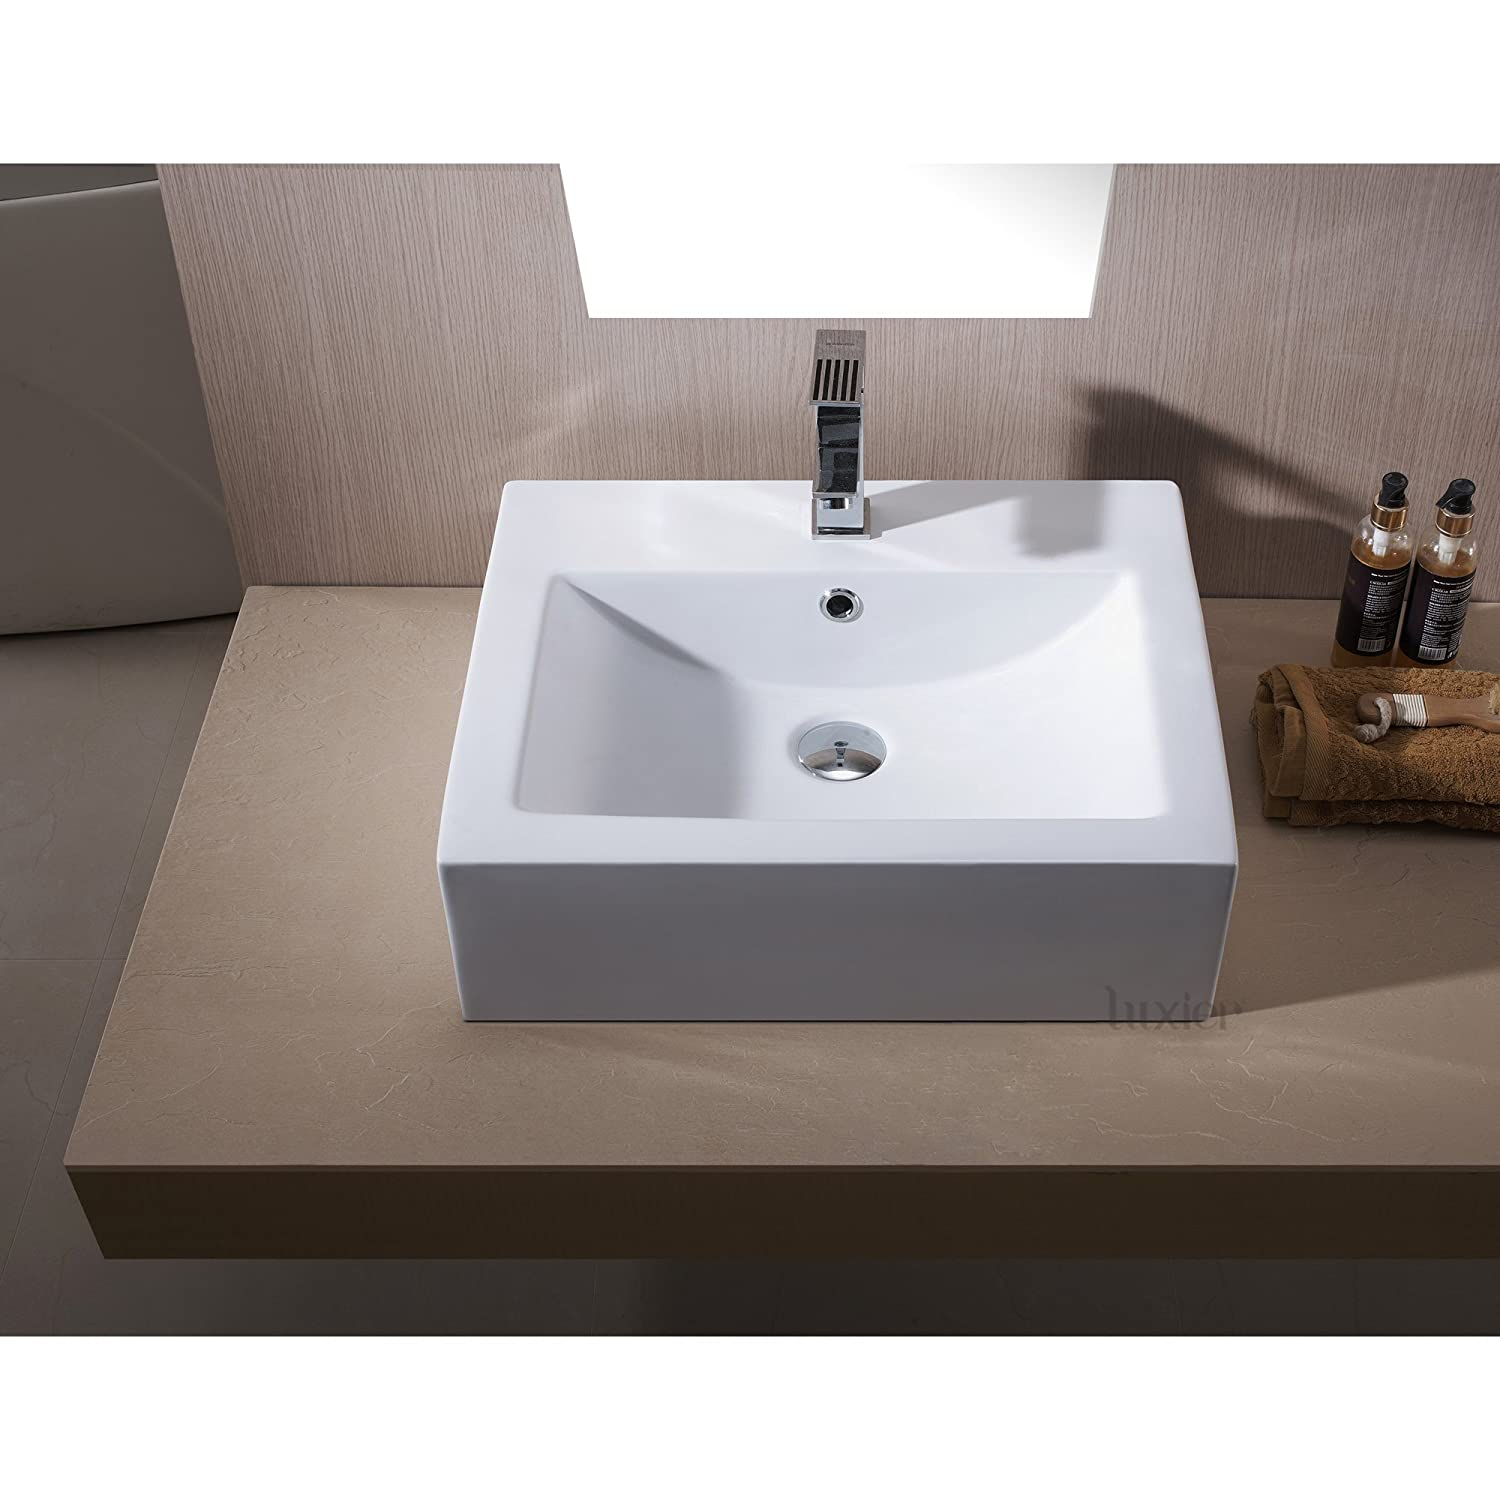 Bathroom available in 5 finishes vessel bathroom sinks msrp 425 - Luxier Cs 003 Bathroom Porcelain Ceramic Vessel Vanity Sink Art Basin Amazon Com